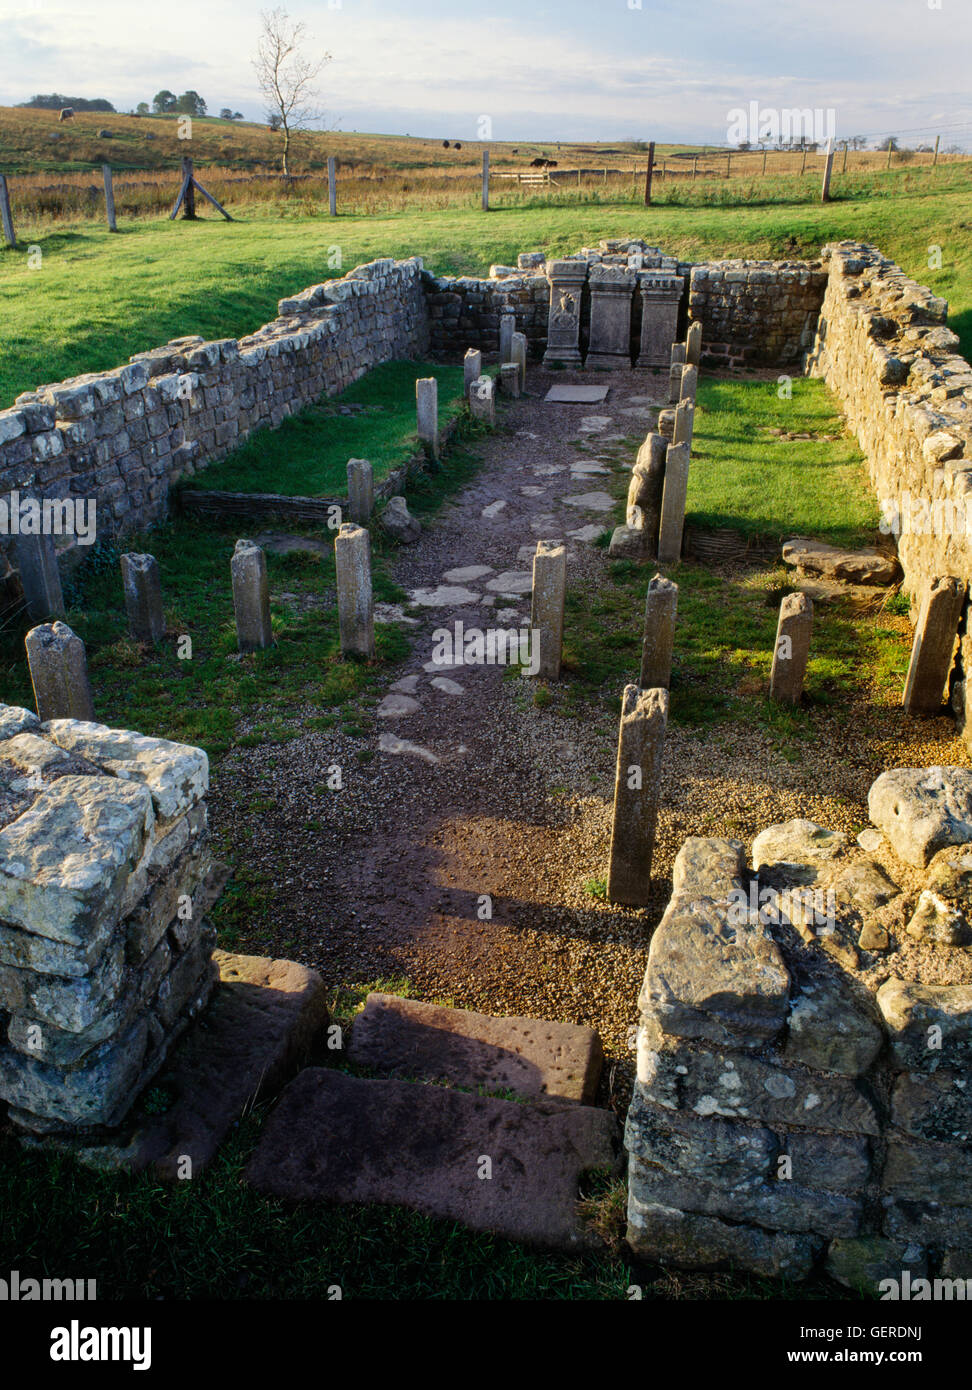 C3rdAD Temple of Mithras (Mithraeum) beside Carrawburgh Roman fort on Hadrian's Wall, Northumberland. Looking - Stock Image